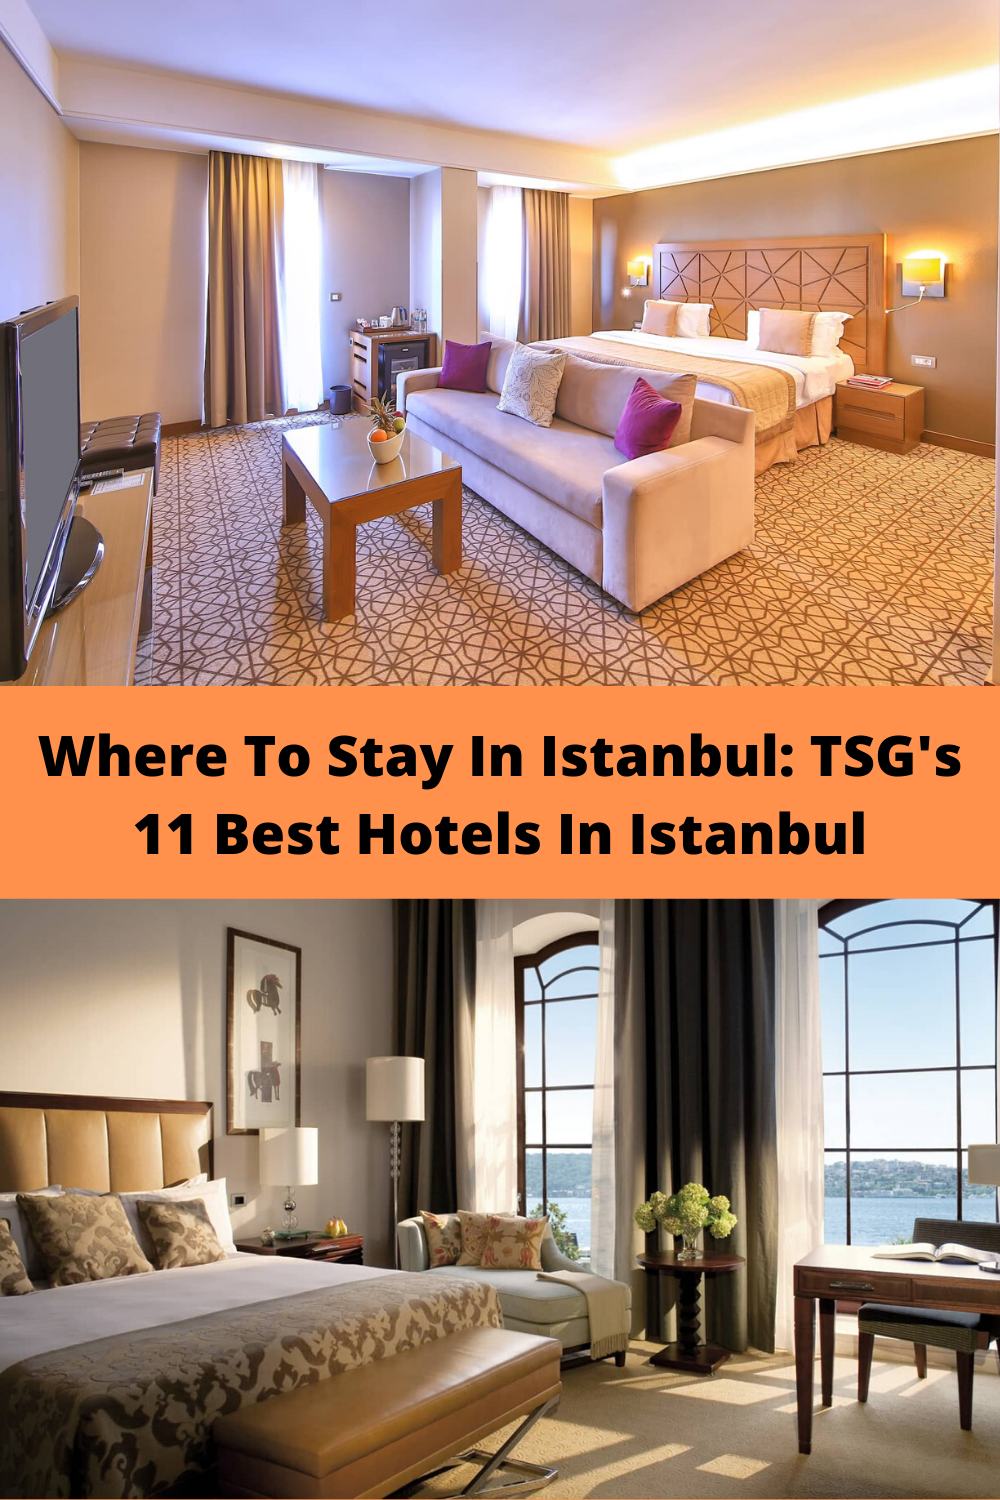 Where To Stay In Istanbul: TSG's 11 Best Hotels In